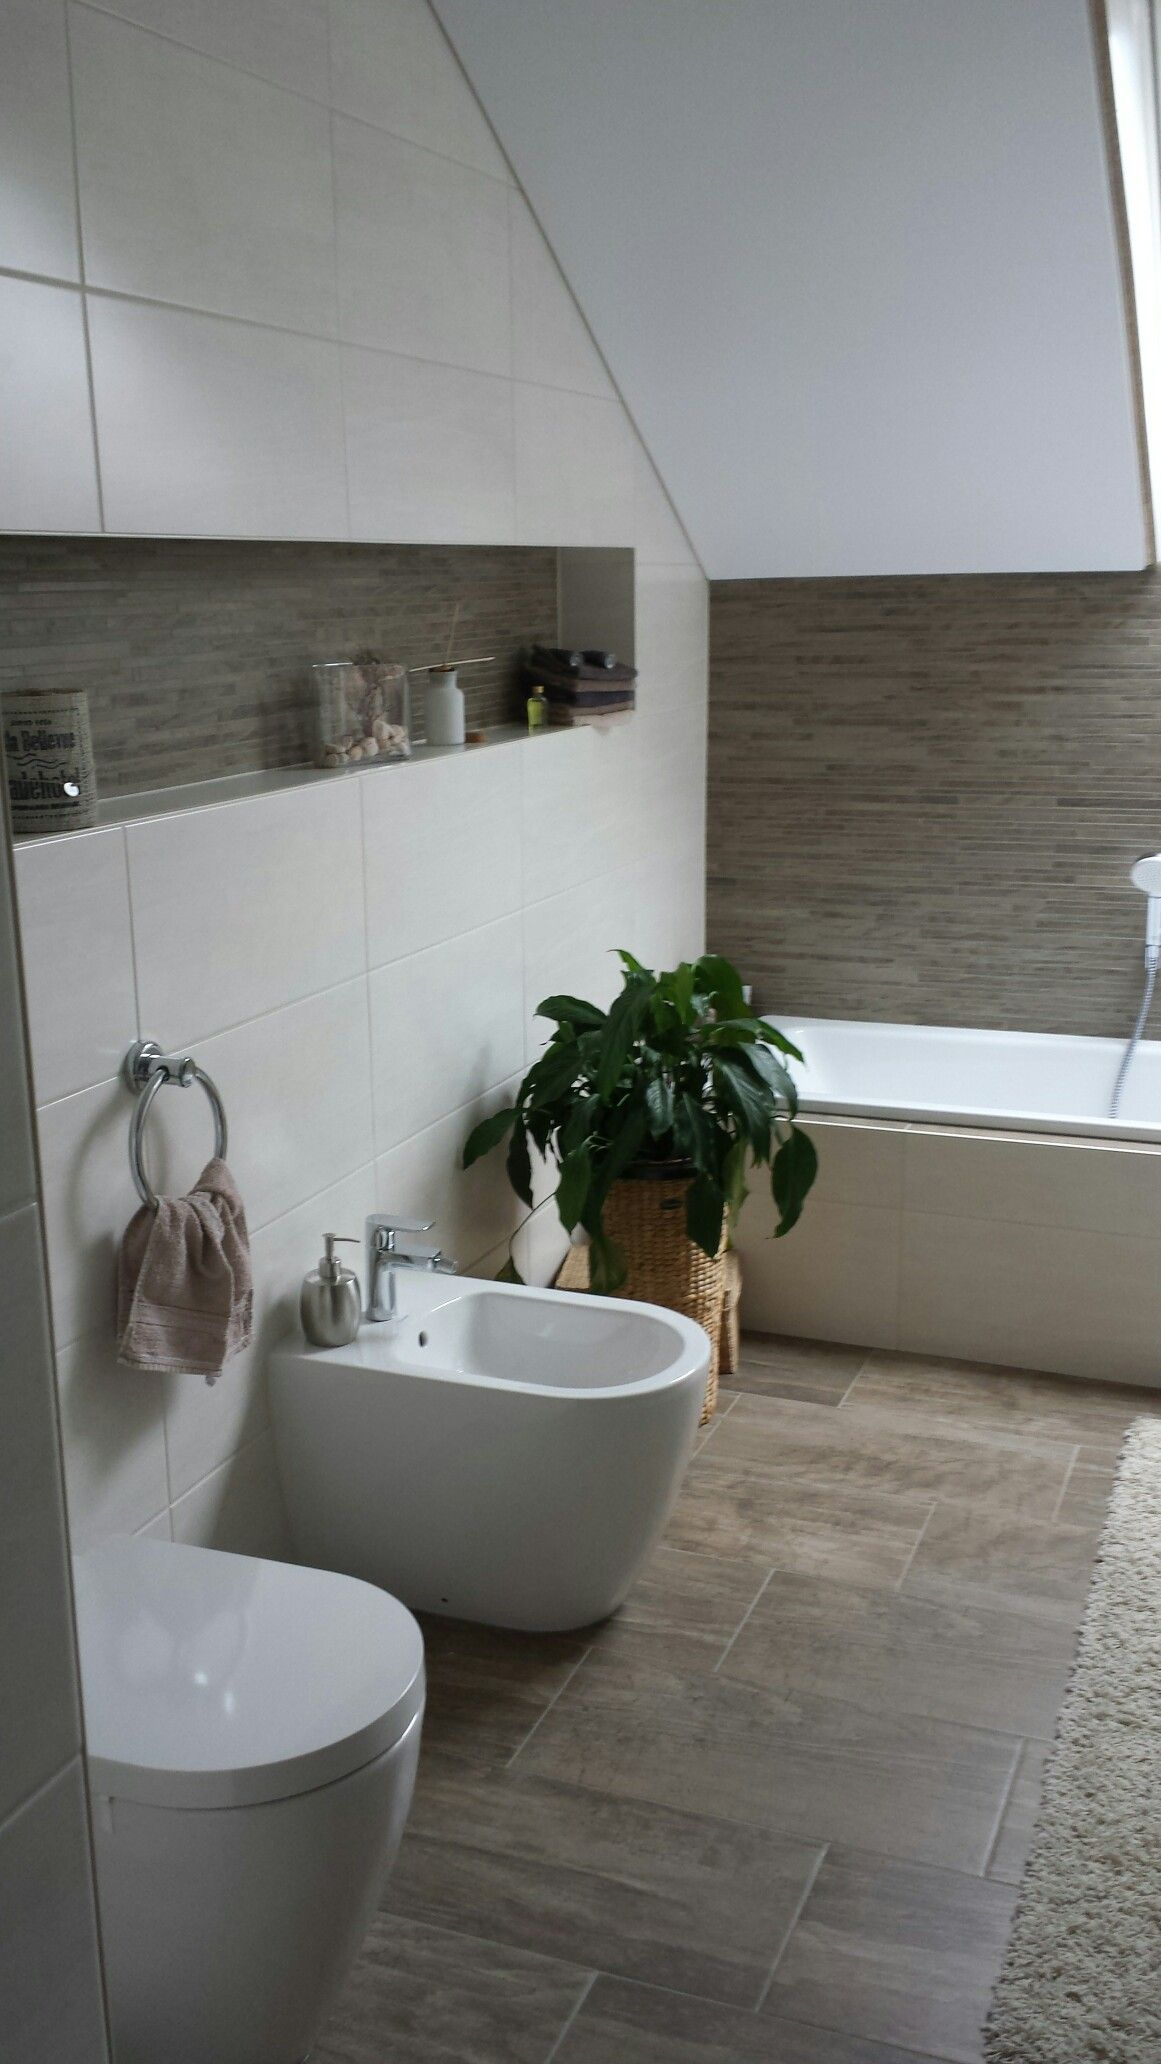 Fliesen In Holzoptik Pinterest Badezimmer Fliesen In Holzoptik Bad Pinterest Bathroom